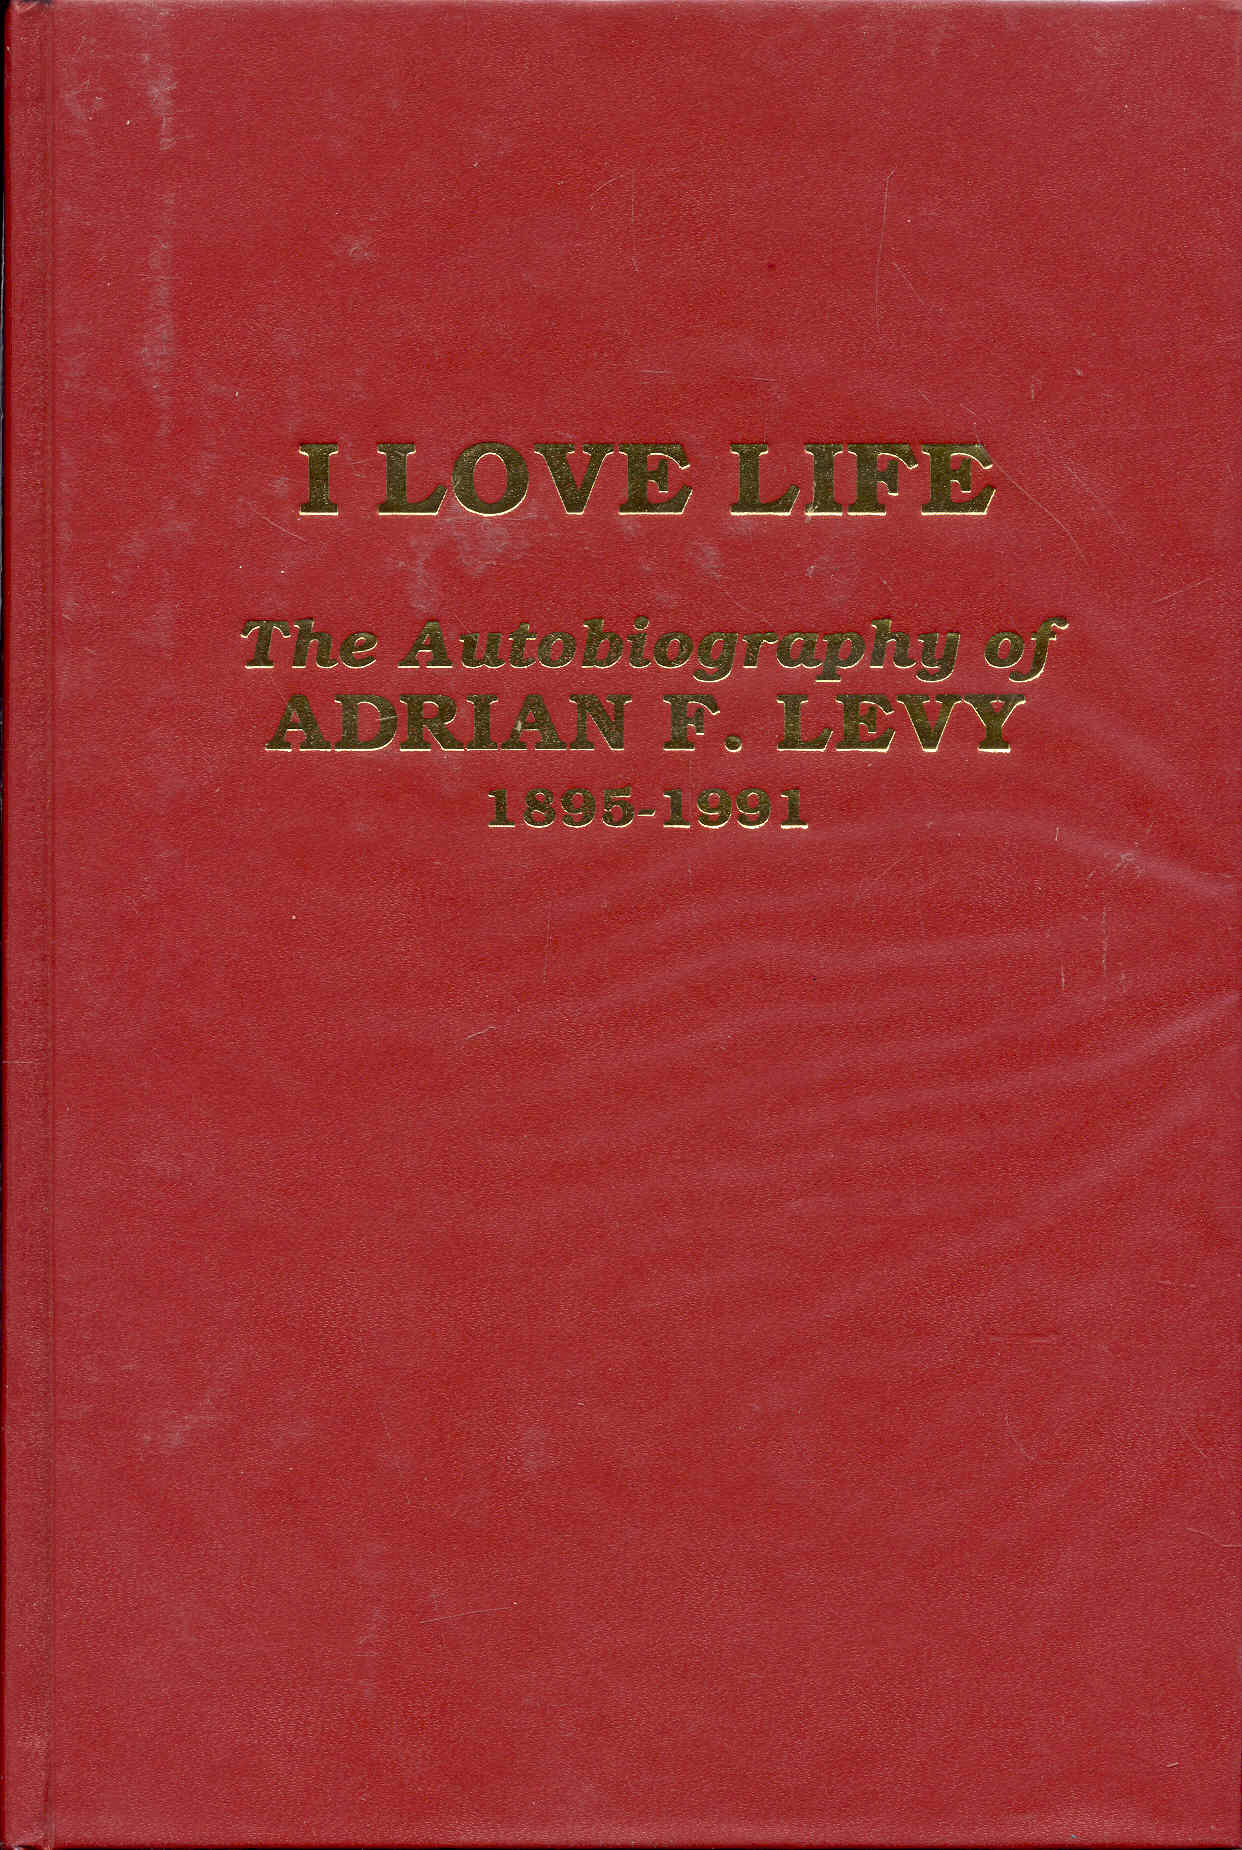 Image for I Love Life; The Autobiography of Adrian F. Levy, 1895-1991